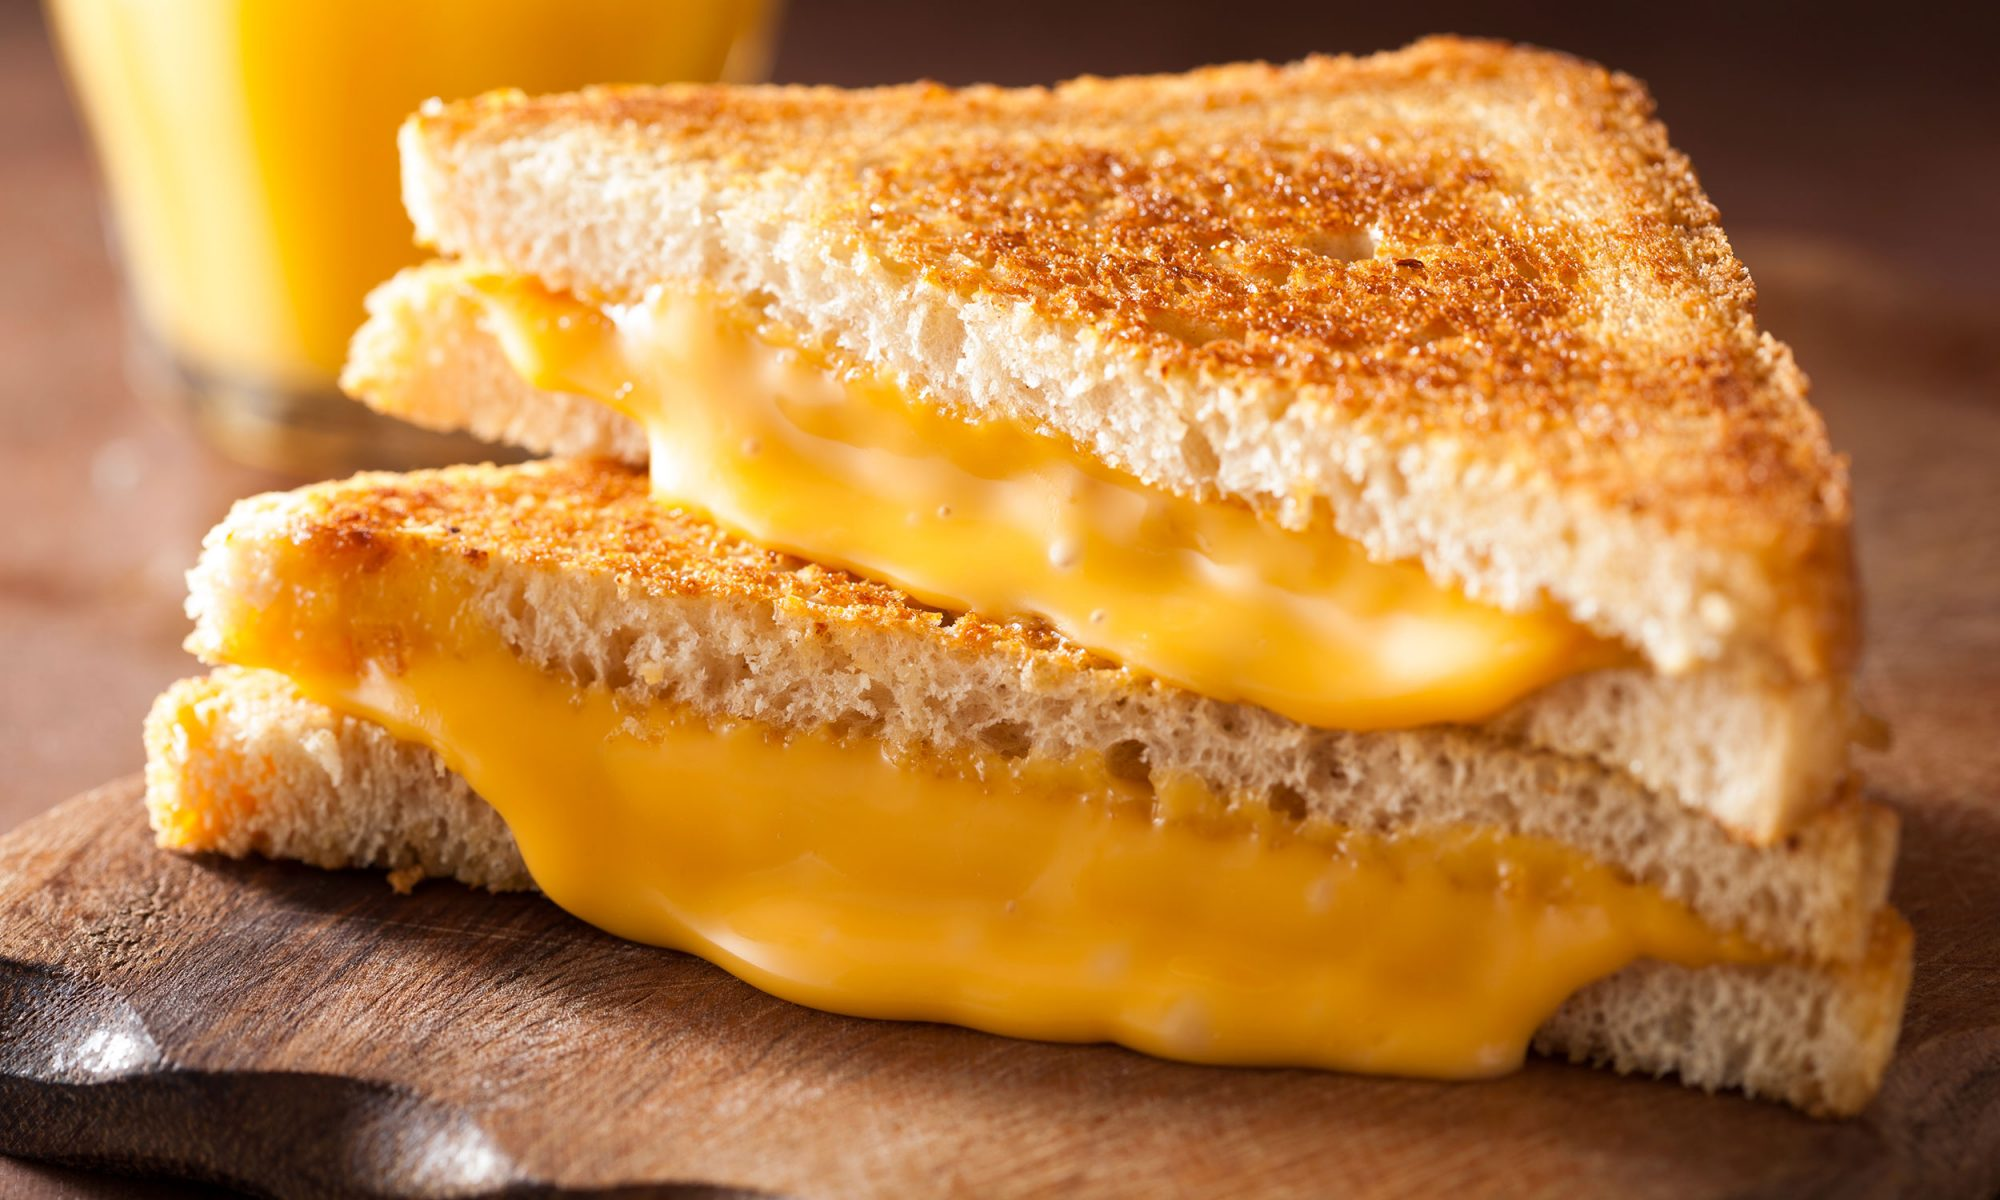 EC: Why Some Cheeses Melt Better Than Others, According to Science